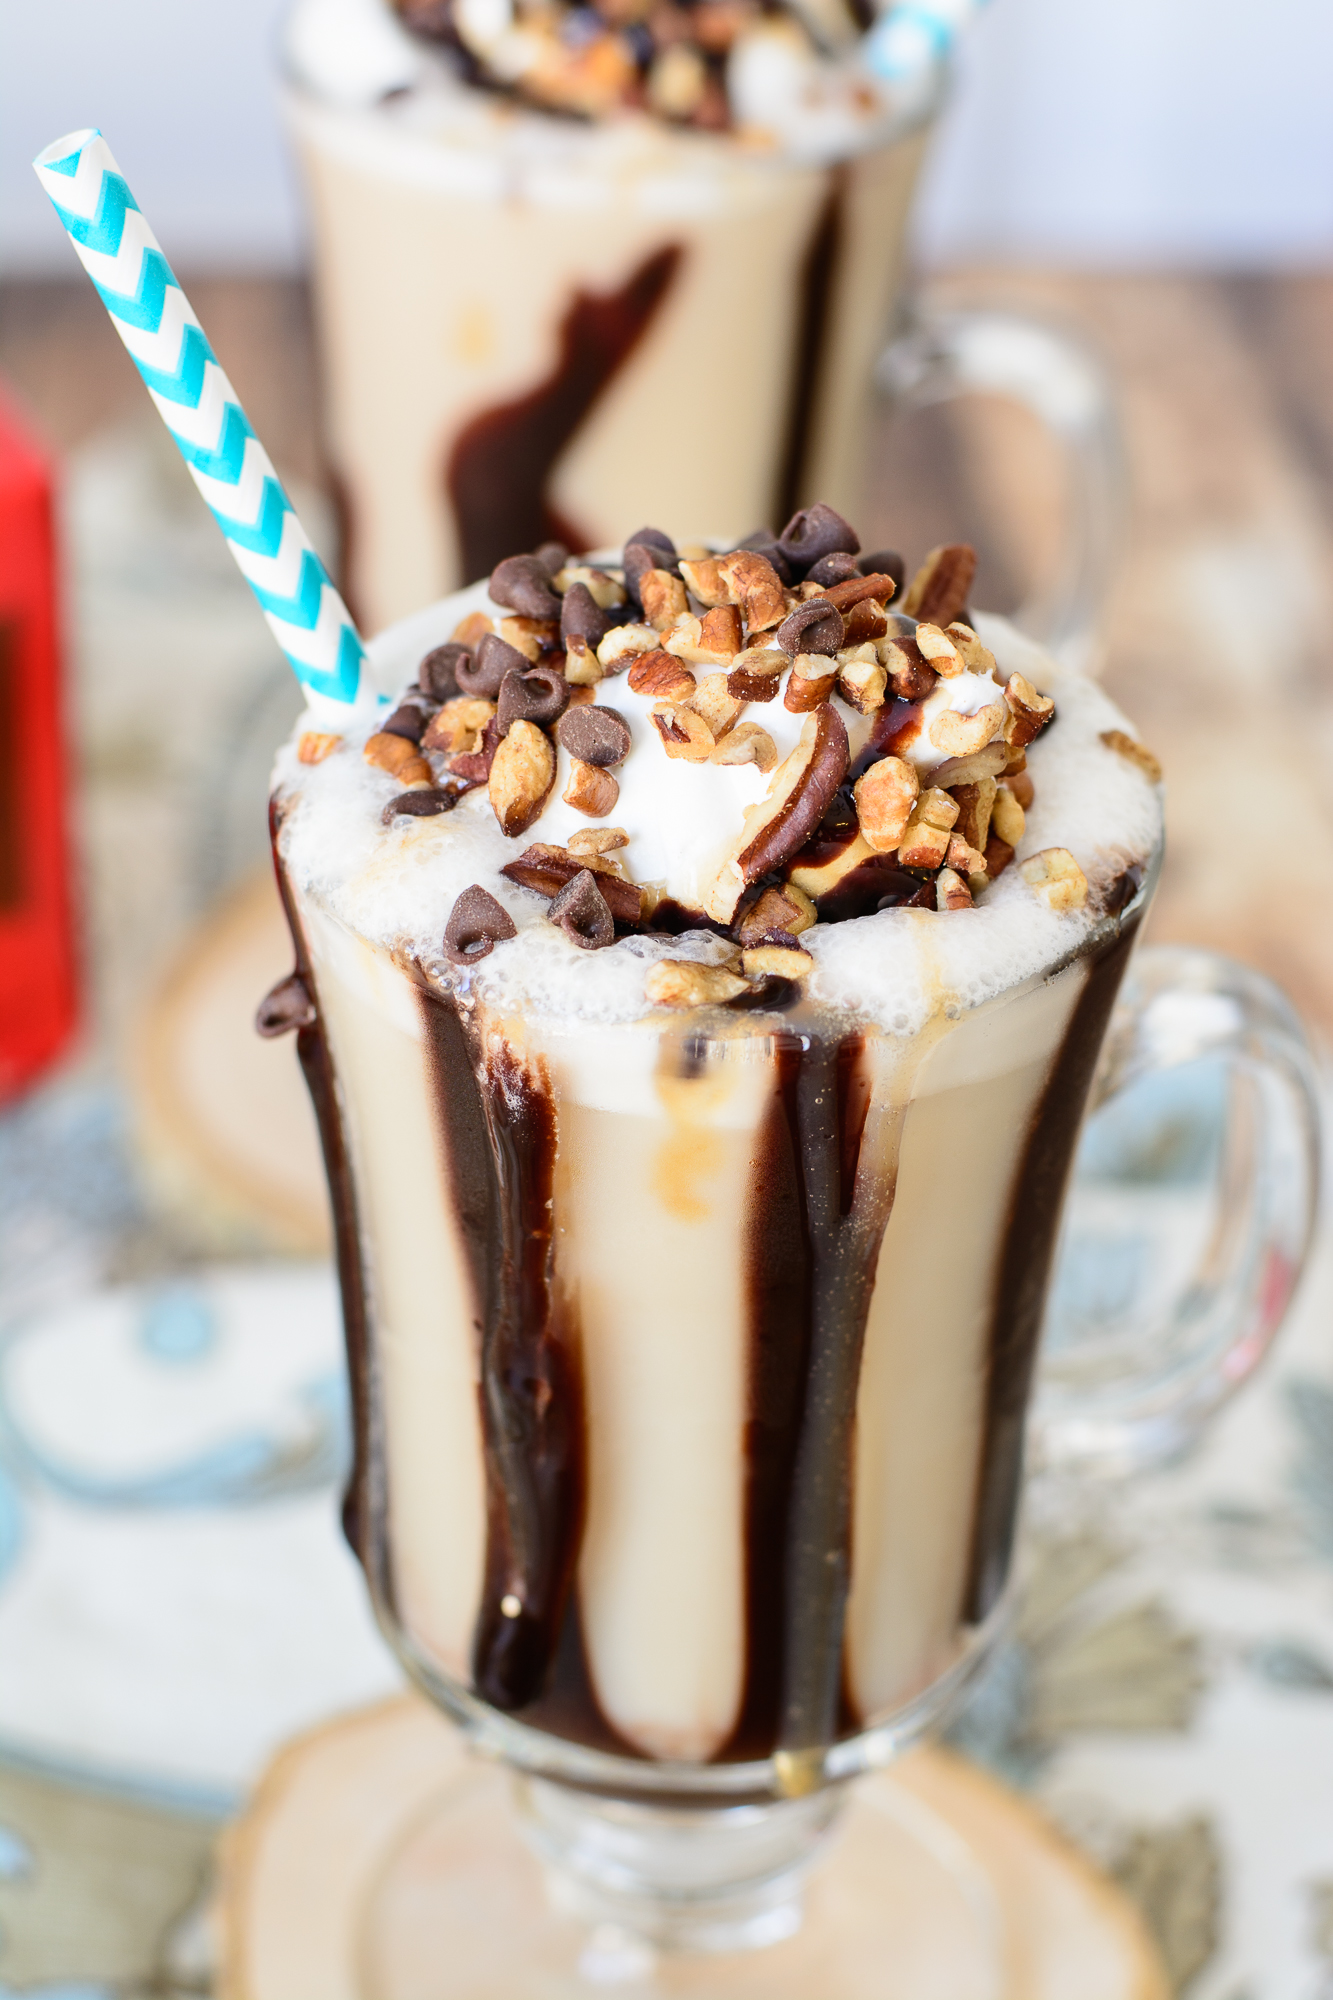 Turtle Frappucino Recipe. This frappe recipe is heaven on earth! Caramel, chocolate, pecans and coffee combine to make an incredible cold coffee drink perfect for summer. You are going to love this frappe recipe!